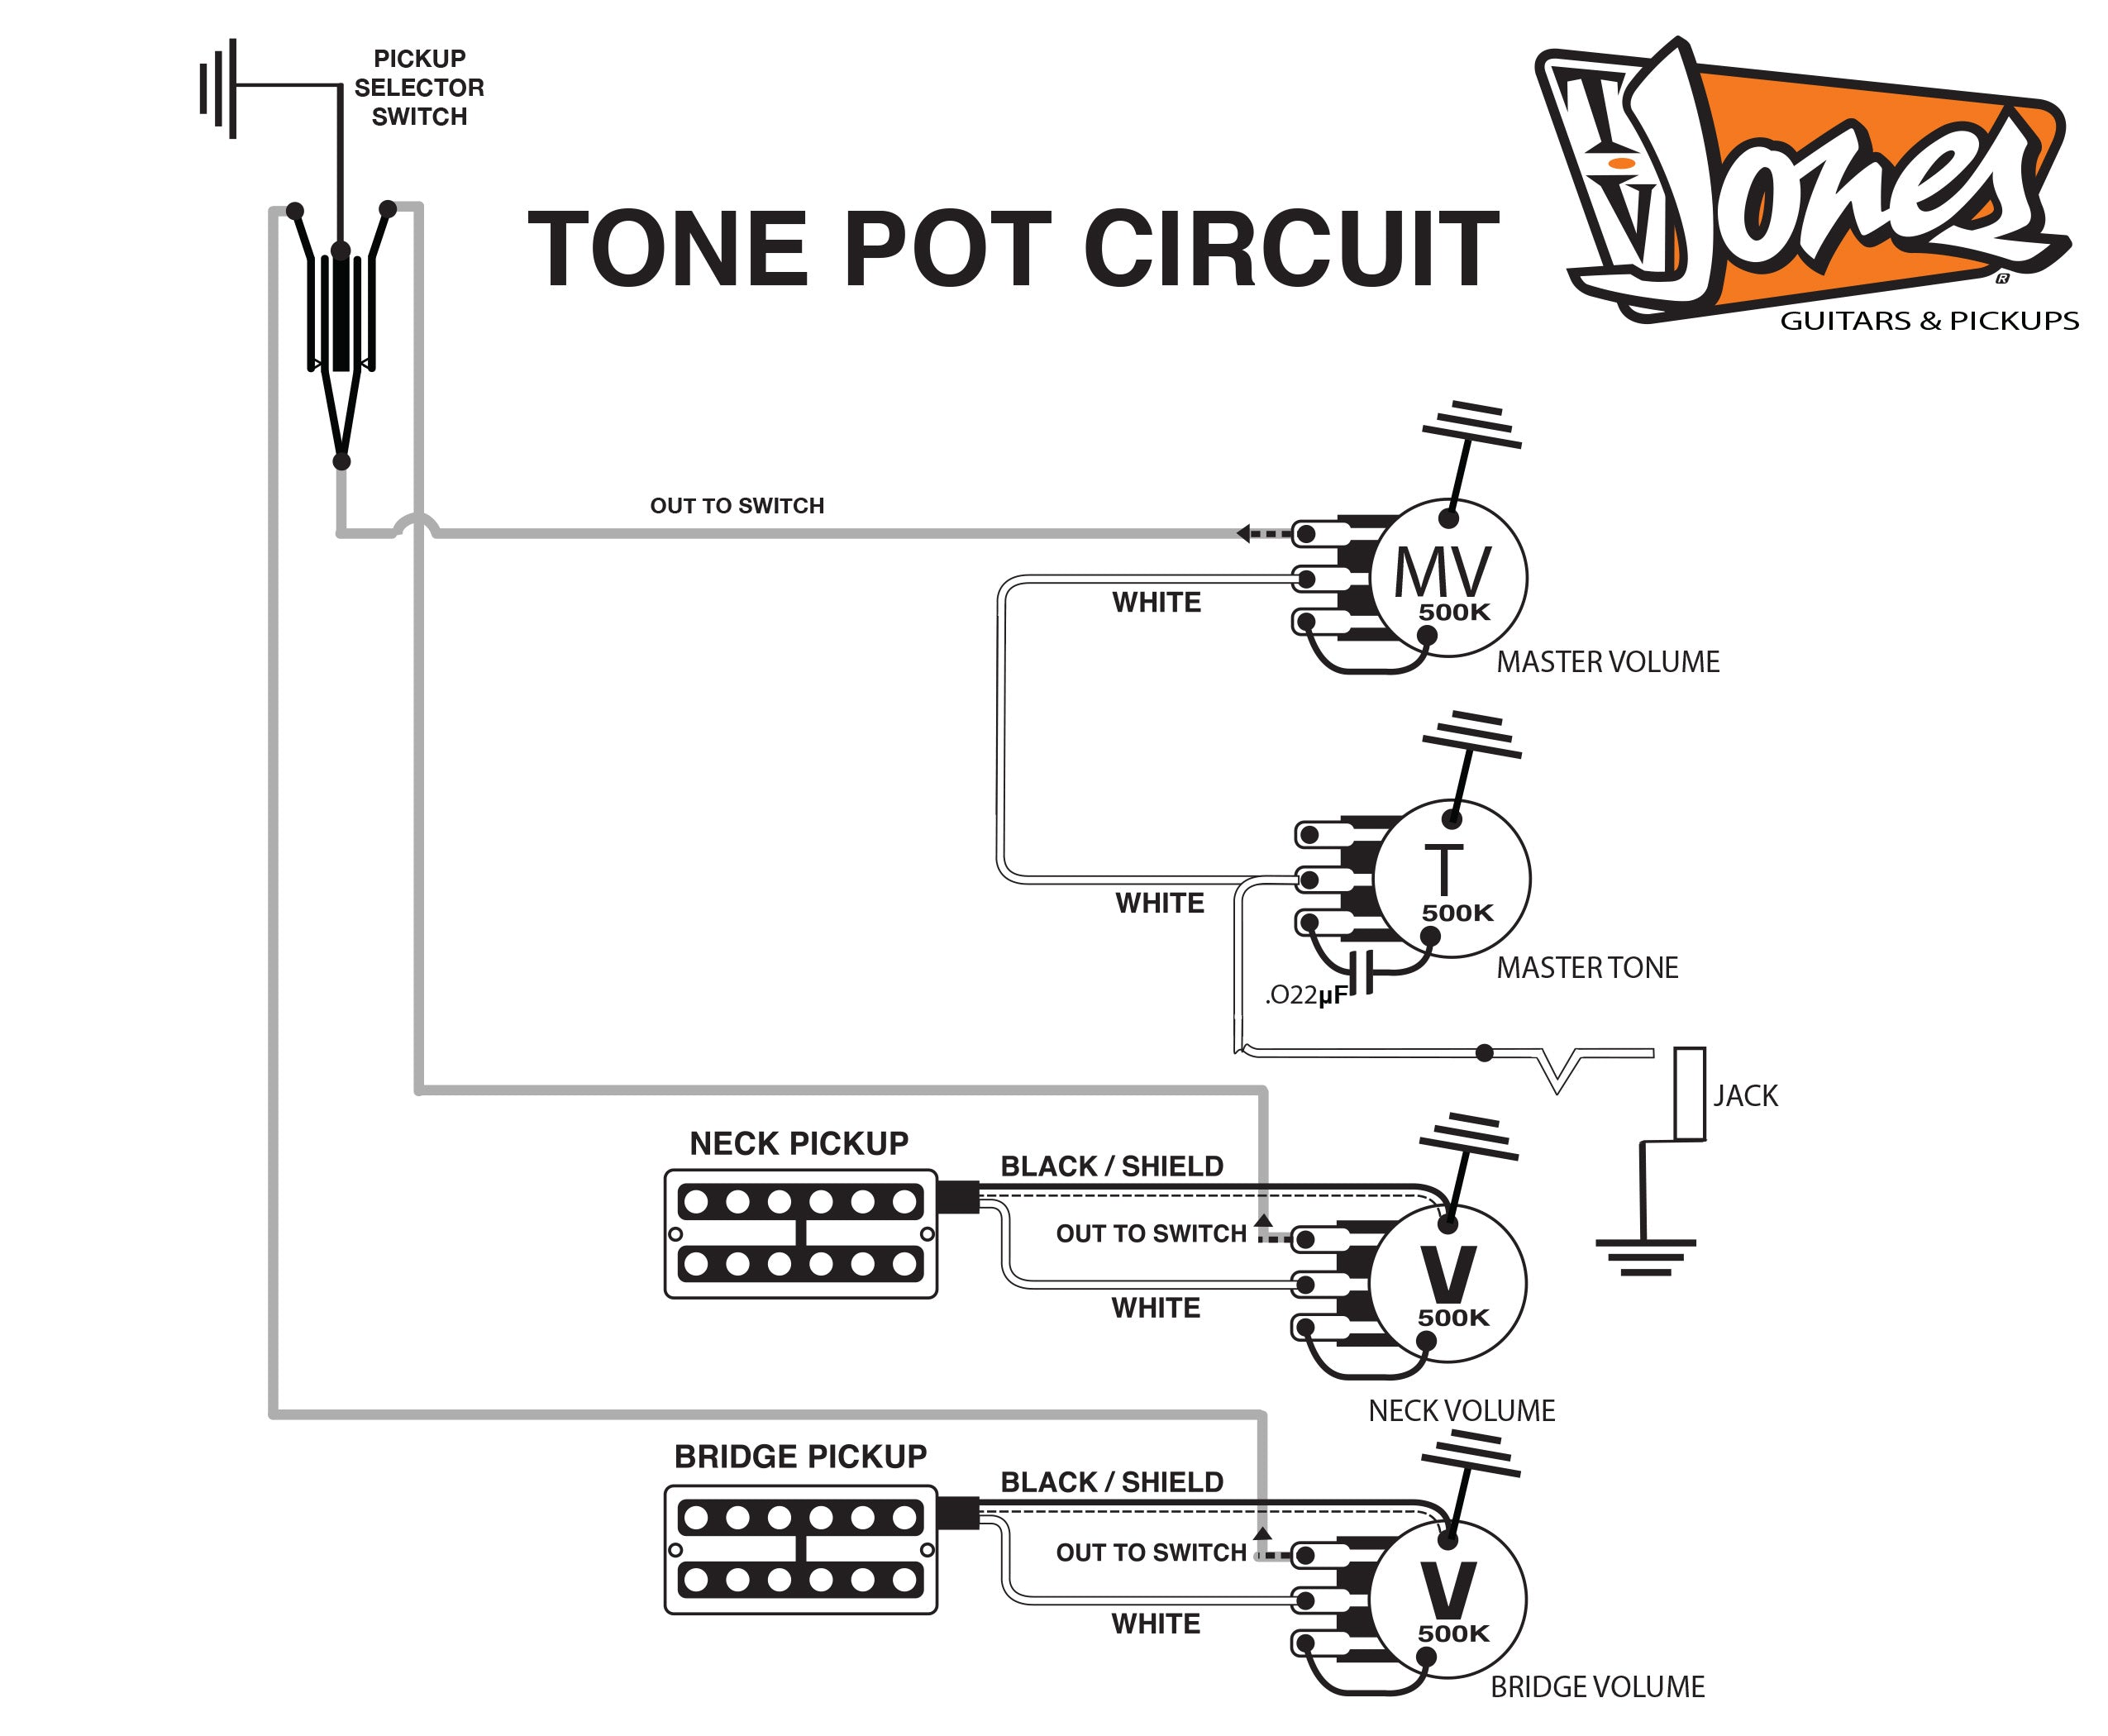 Tv Jones Product Dimensions Les Paul Pro Wiring Diagram Gretsch Guitar Schematics